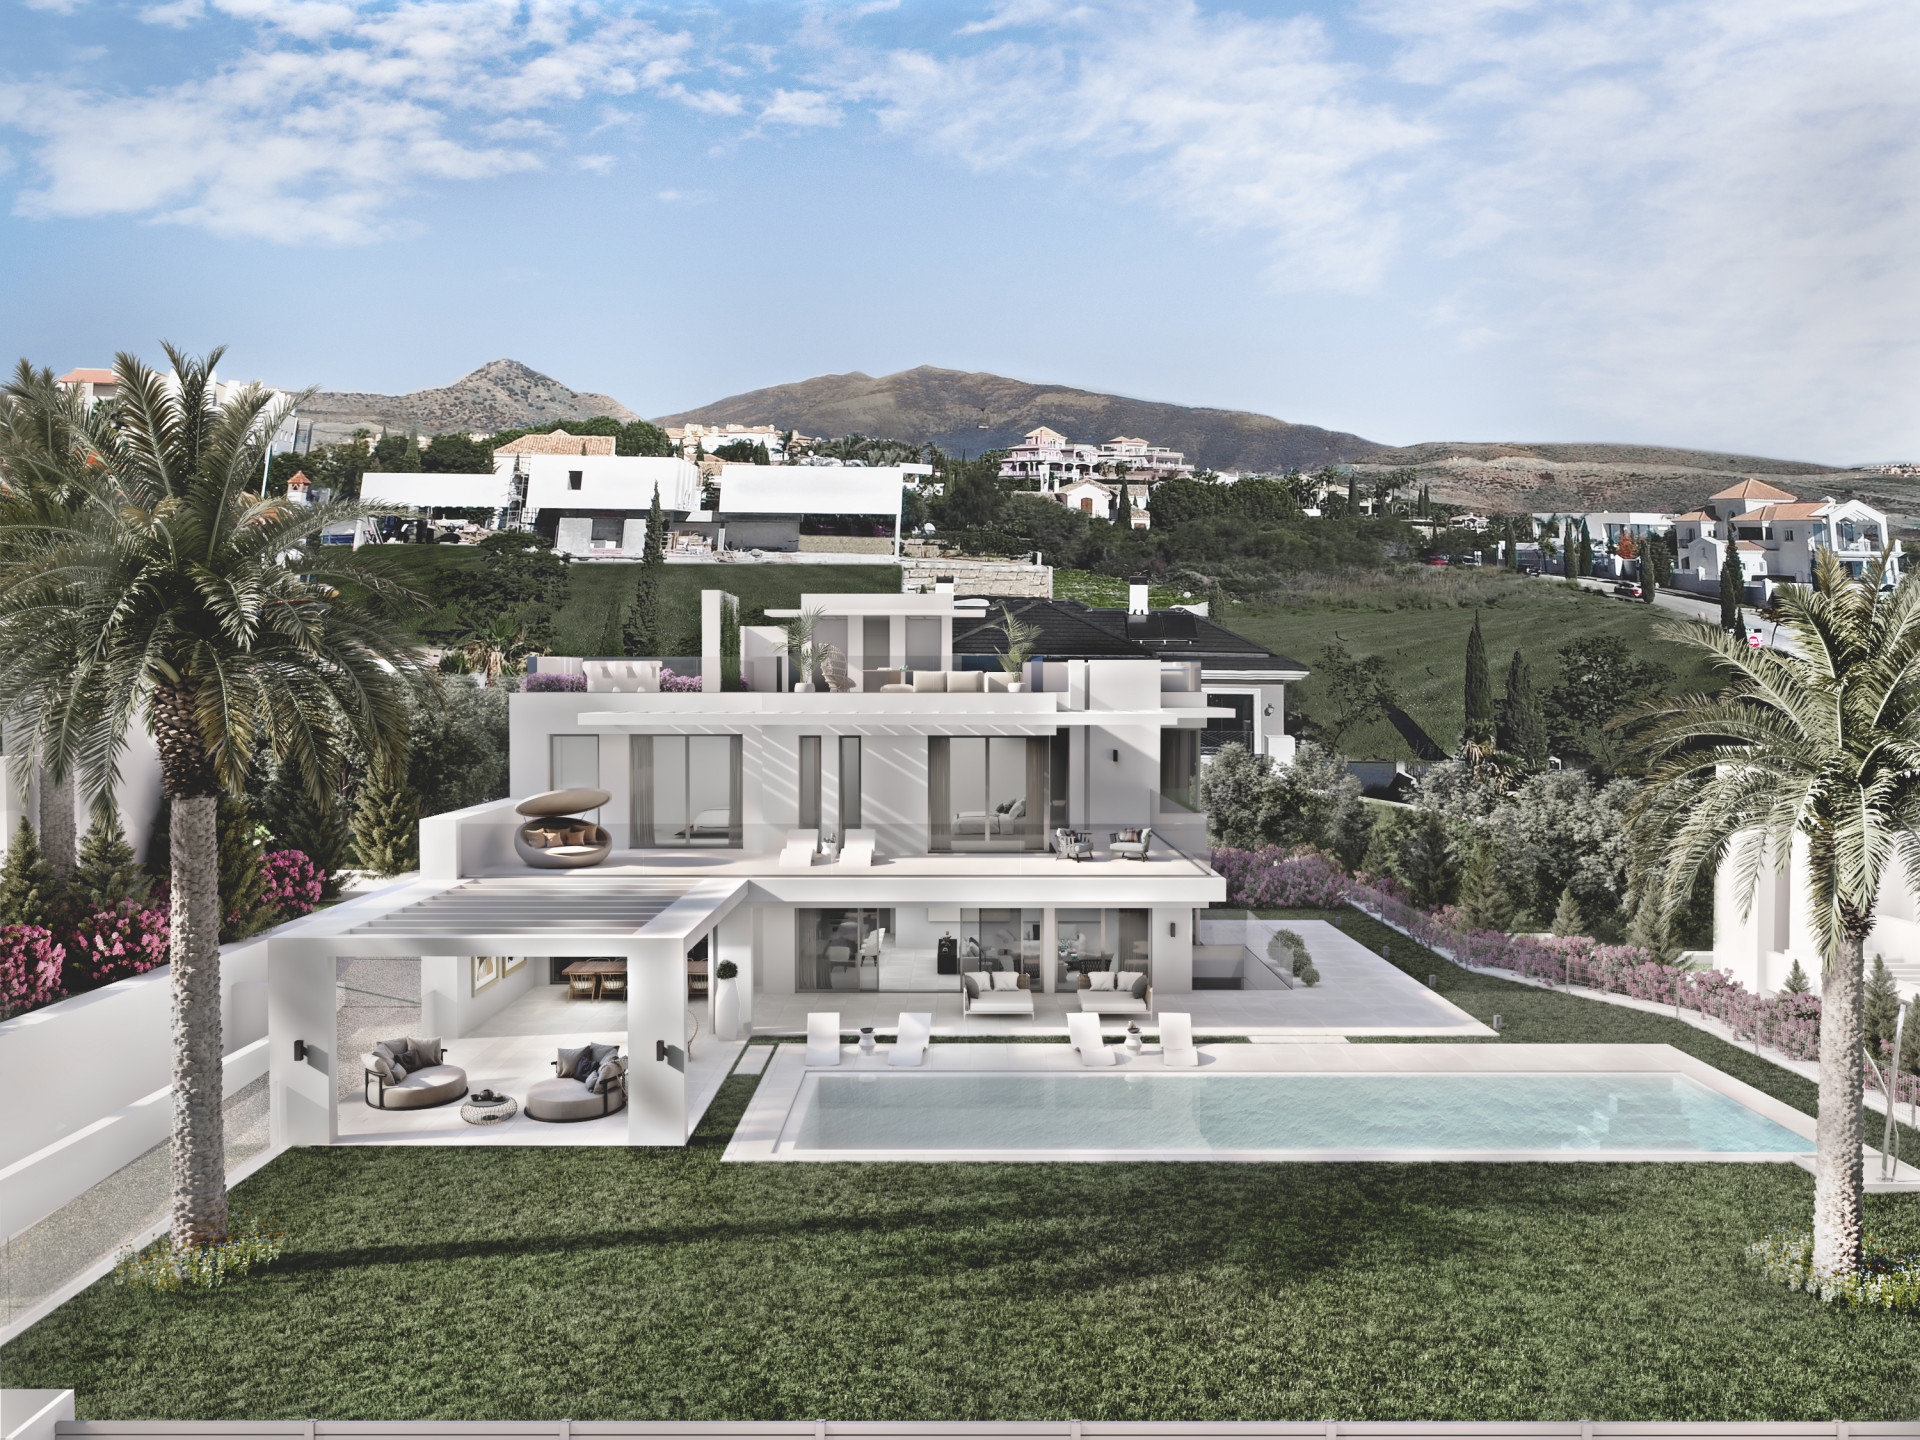 Villa for sale in <i>Los Flamingos, </i>Benahavis